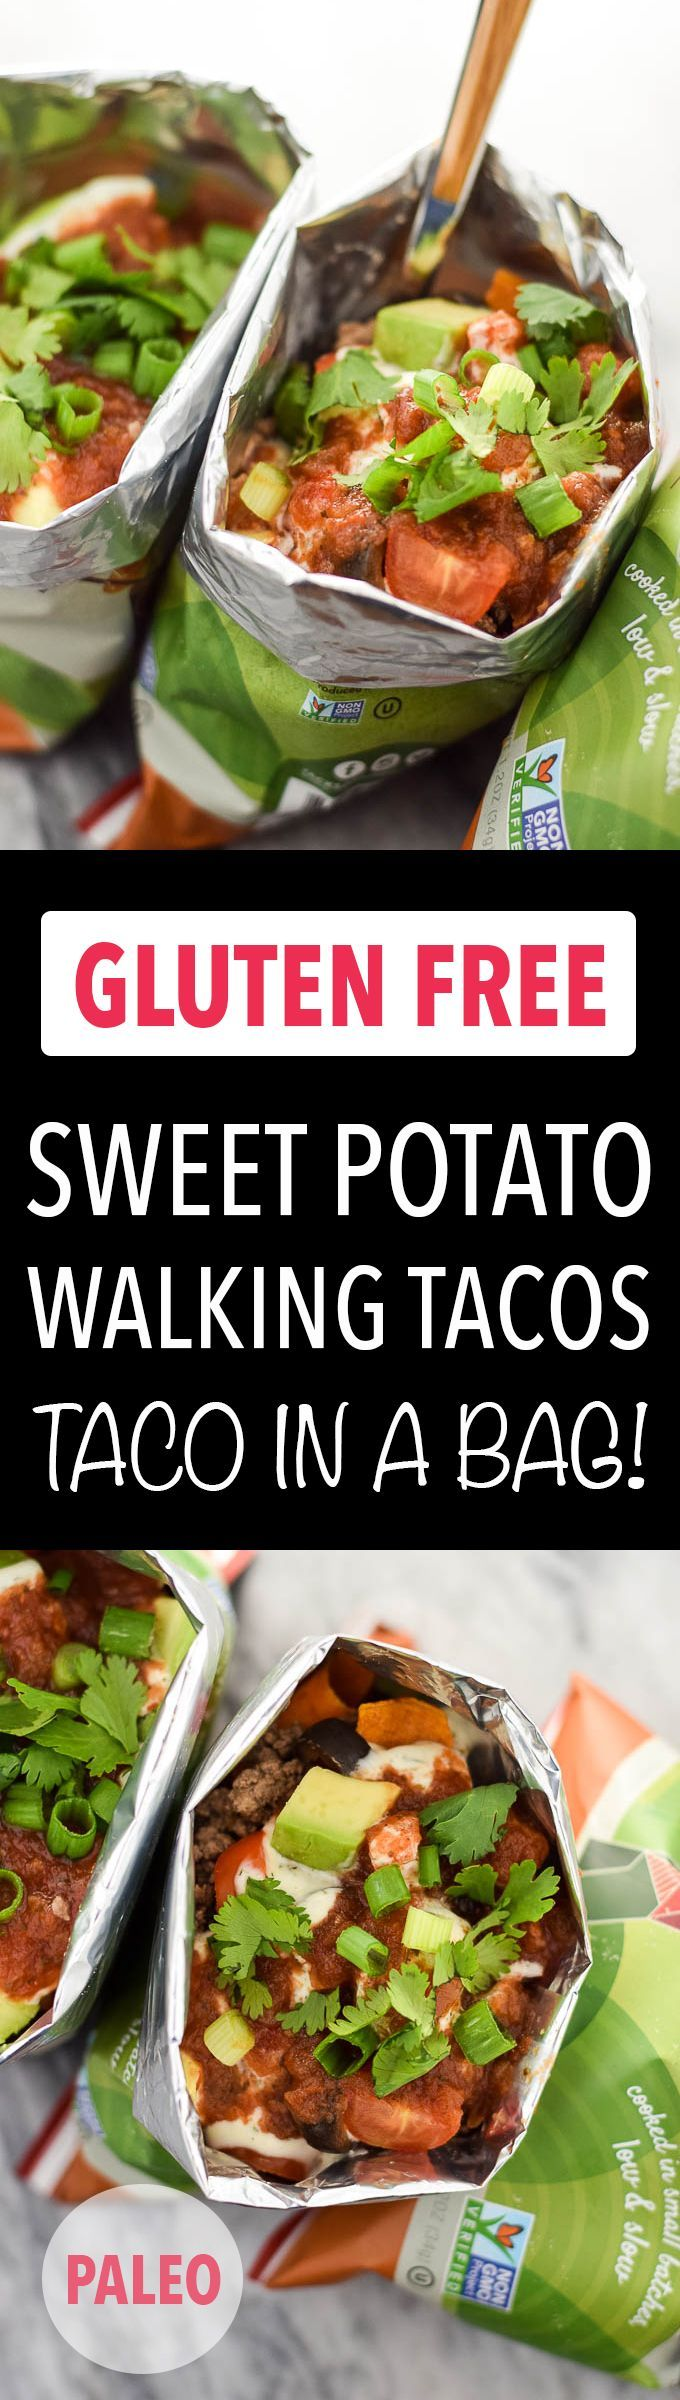 Sweet potato walking tacos are a fun, healthy meal made with crunchy sweet potato chips and your favorite taco toppings. Gluten free, Dairy Free, Paleo.